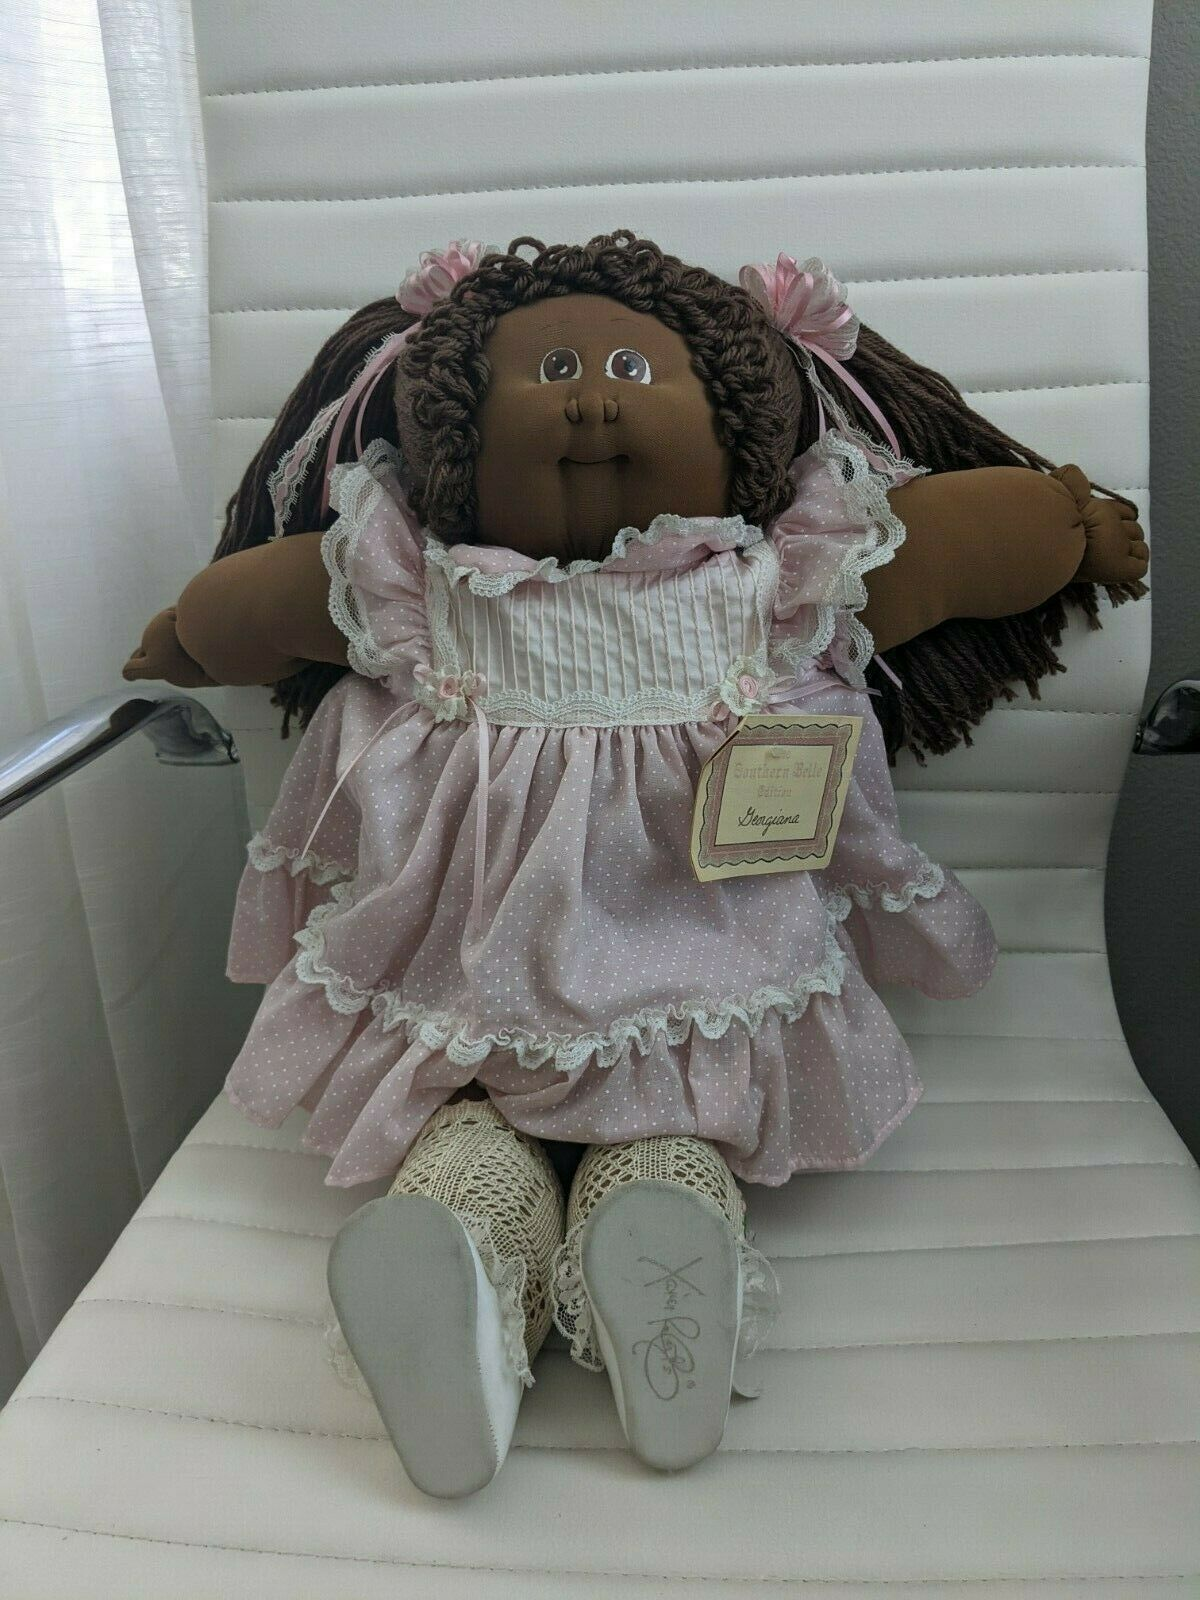 1985 Xavier Roberts/ Cabbage Patch Kids Soft Statue Southern Belle - Georgiana - $200.00